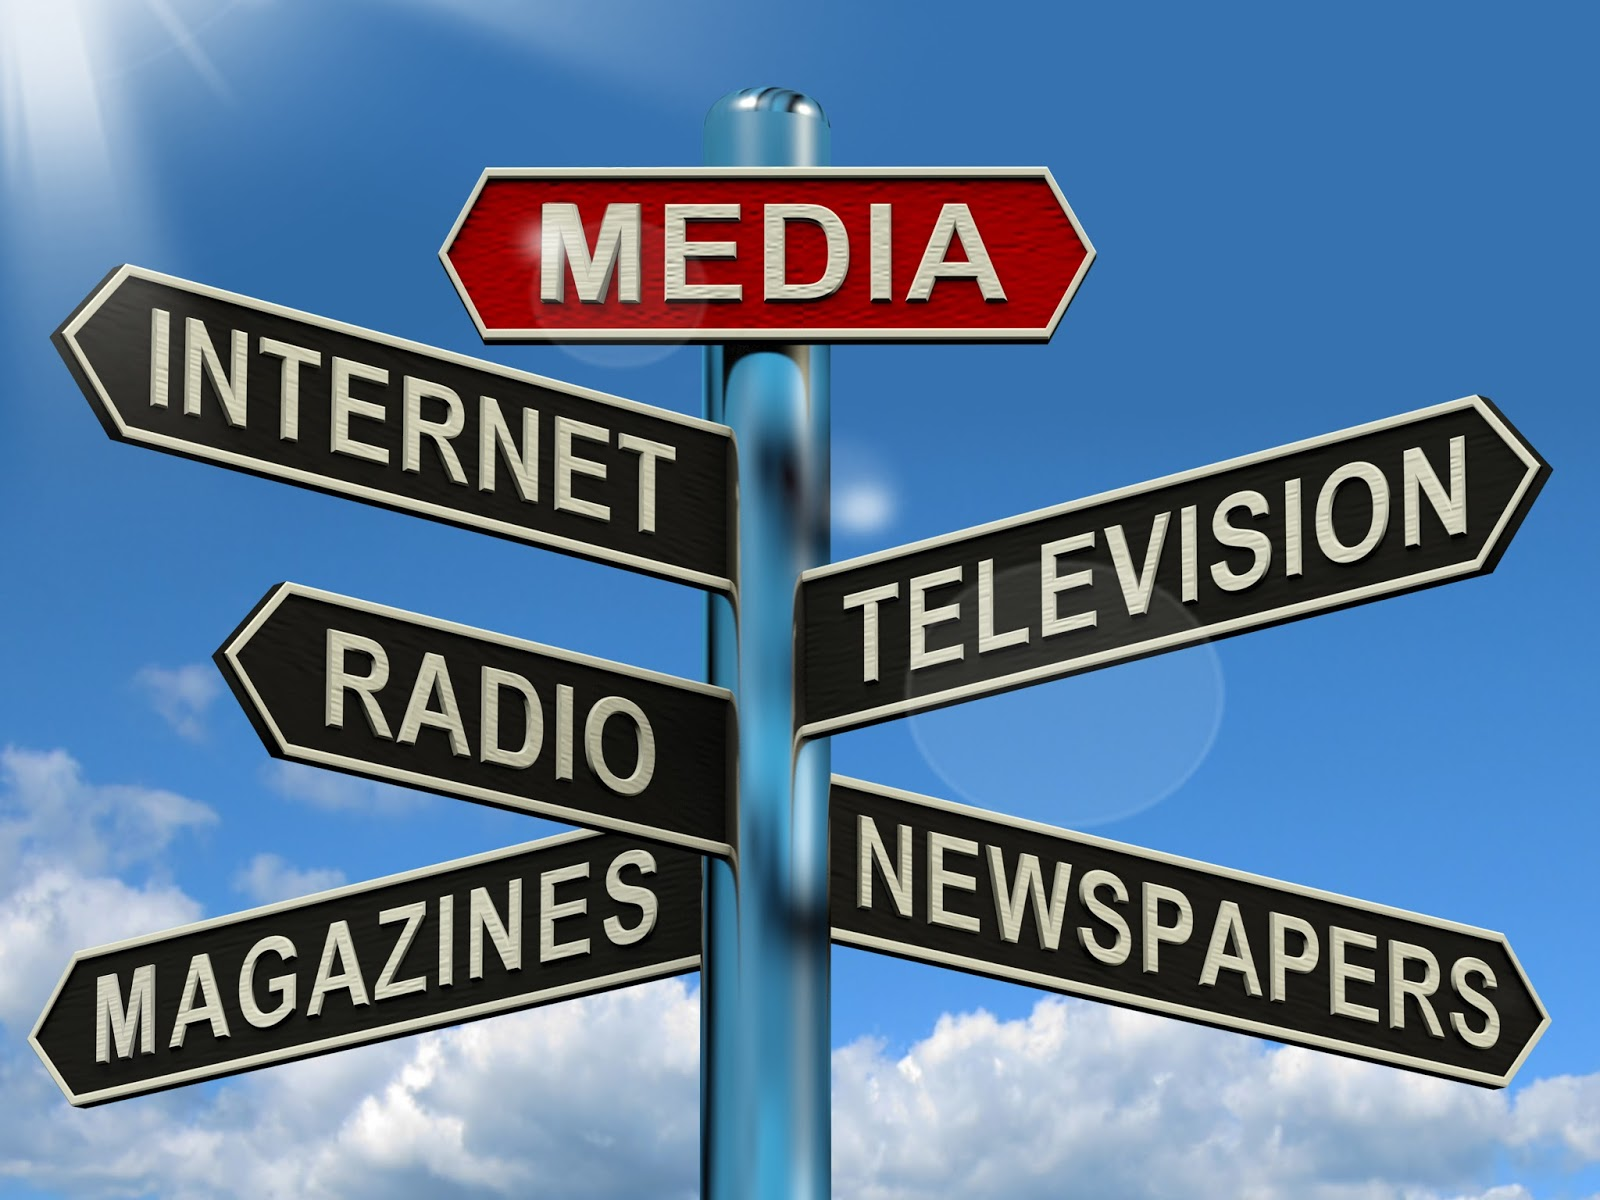 media-signpost-showing-internet-television-newspapers-magazines-and-radio_M1GfCMwO